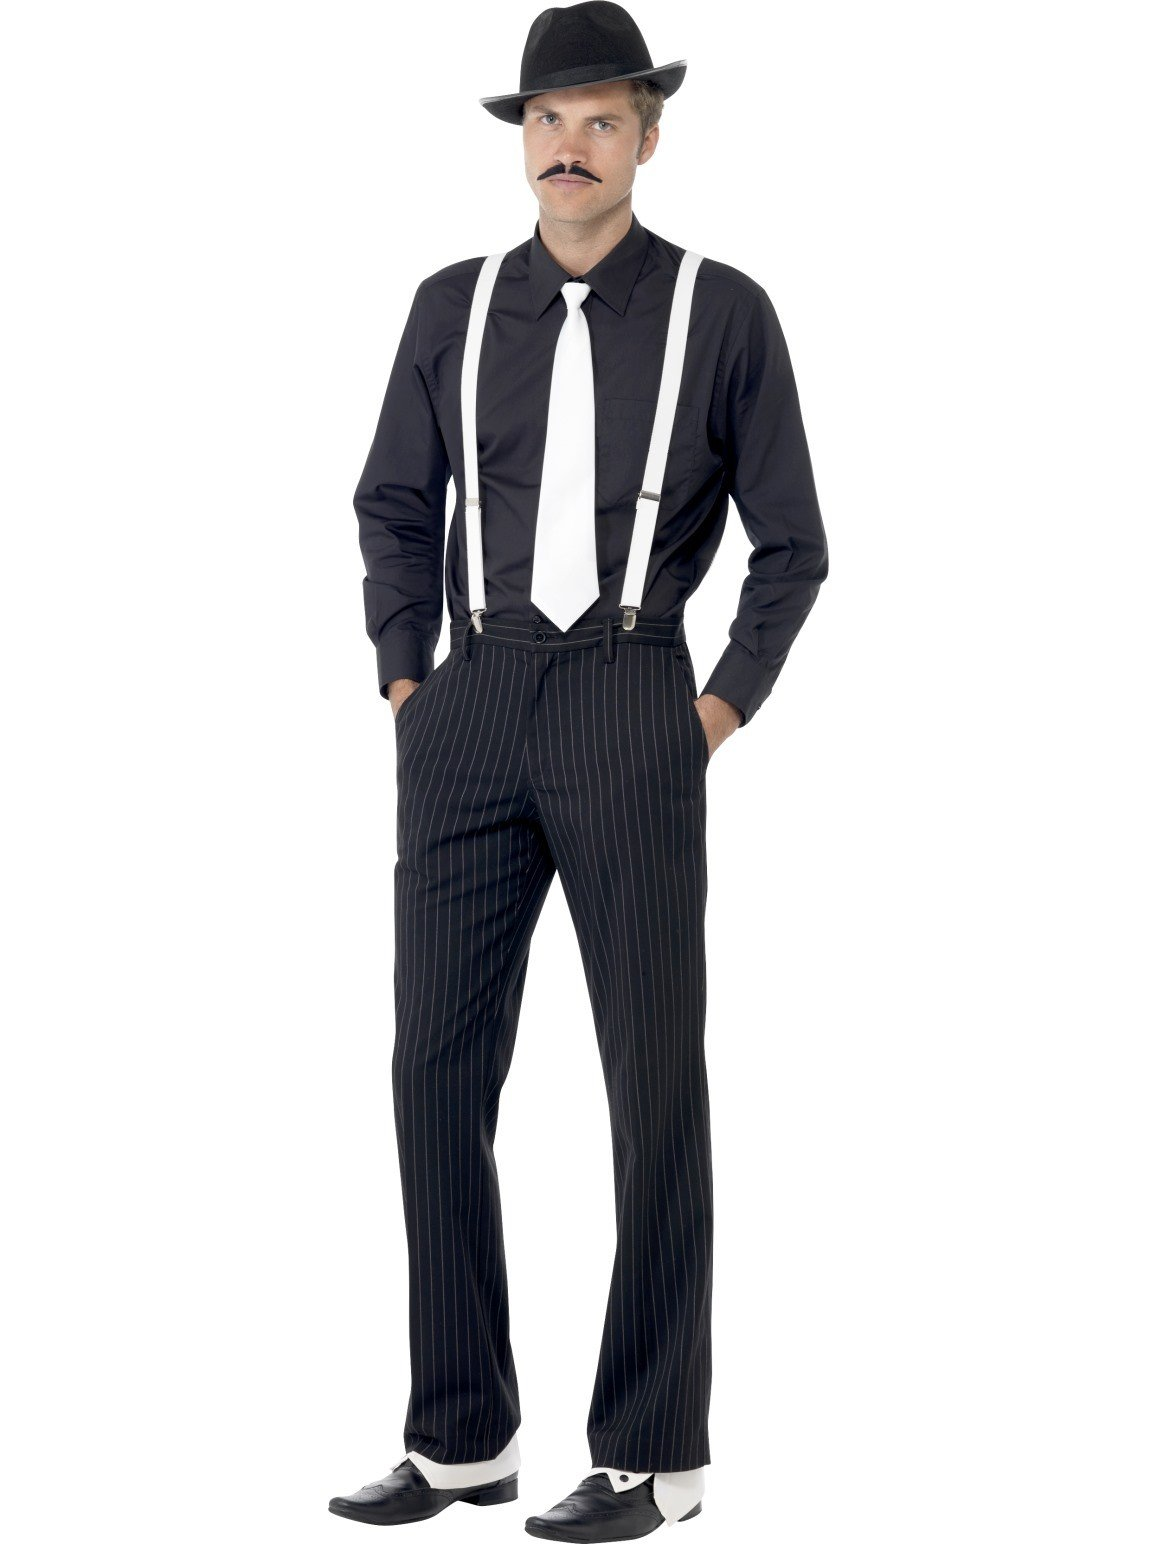 1920s gangster hat and accessories dress up gatsby costume kit. Black Bedroom Furniture Sets. Home Design Ideas